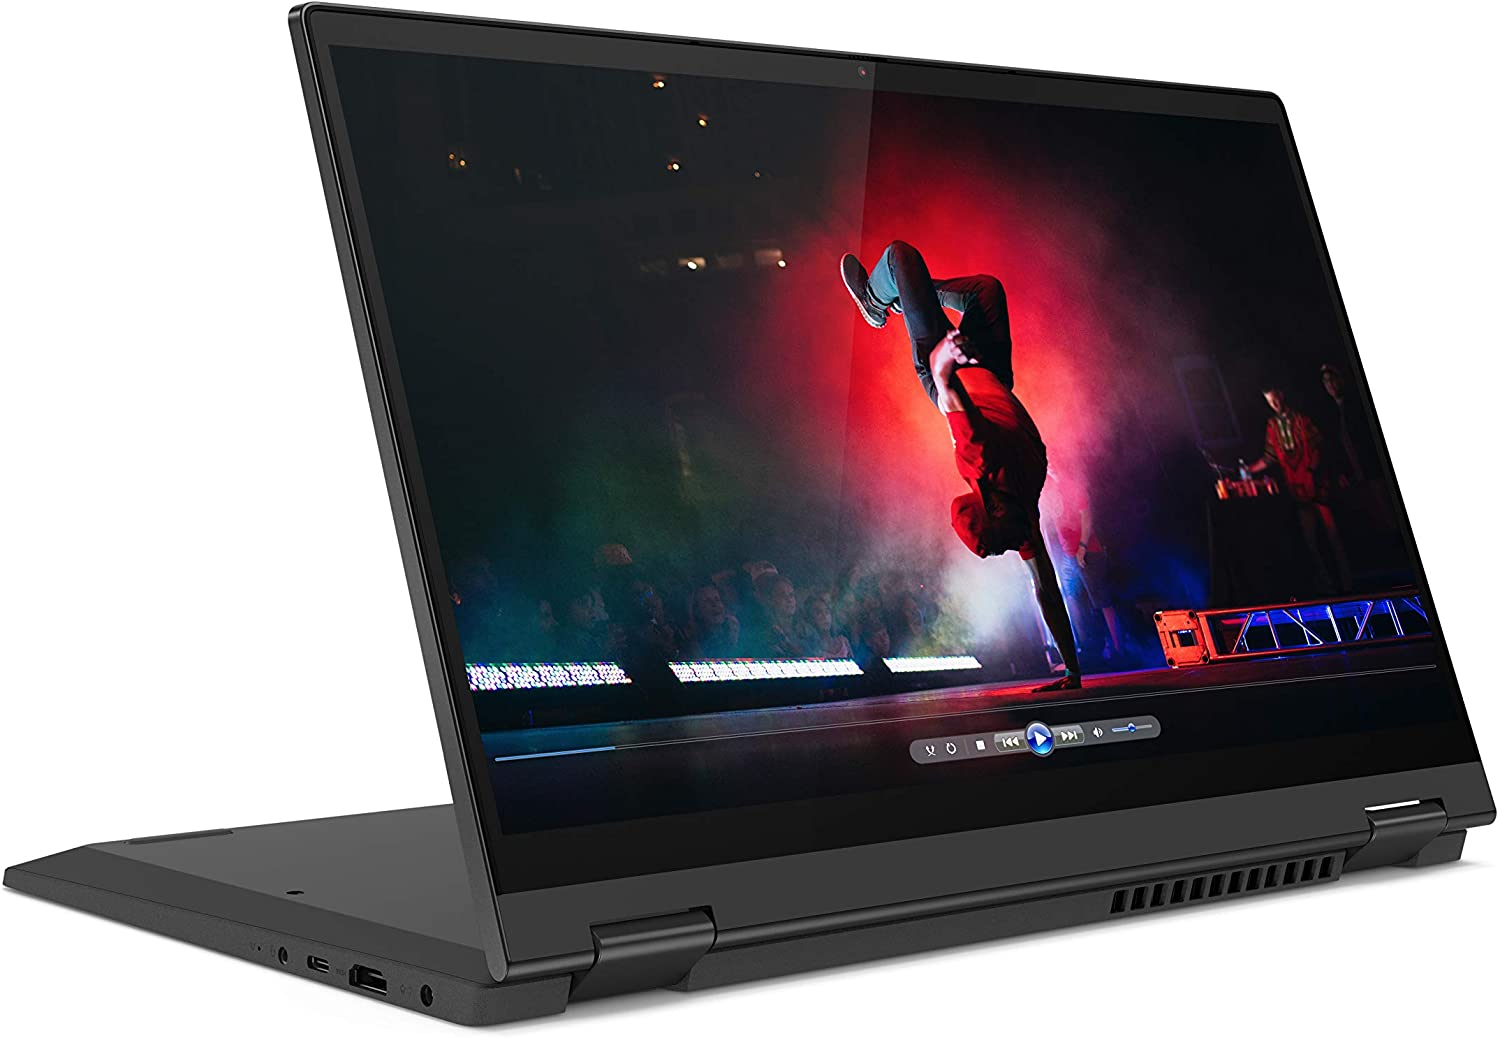 Image of article 'Lenovo Flex 5 2-in-1 with AMD Ryzen 5 4500U, 16 GB of RAM, and 256 GB SSD now on sale for $600 USD'